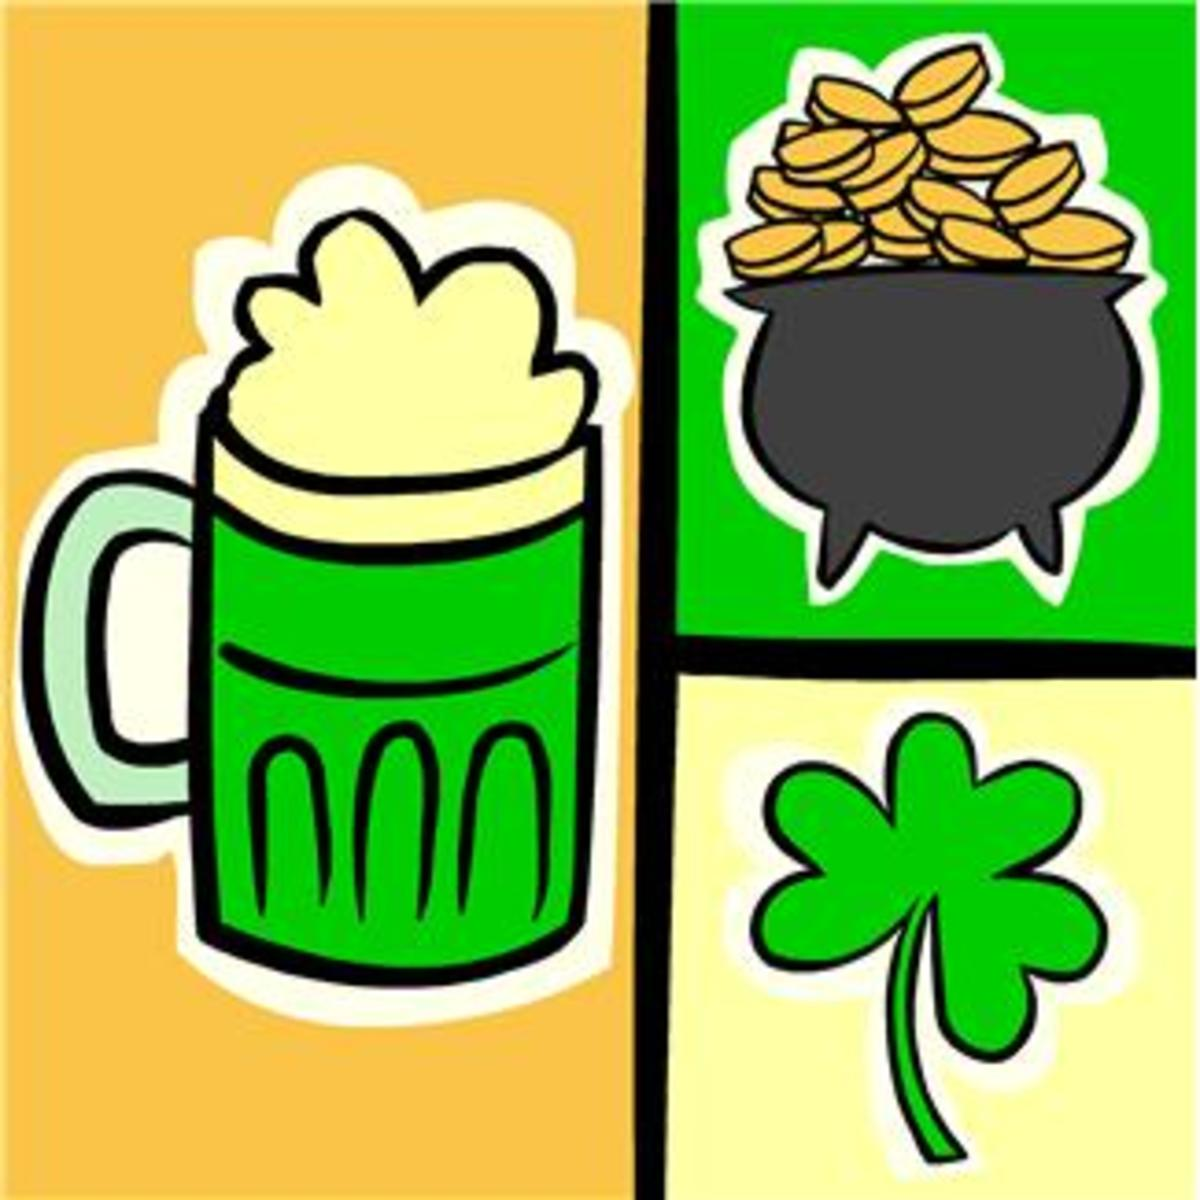 Images of St. Patrick's Day